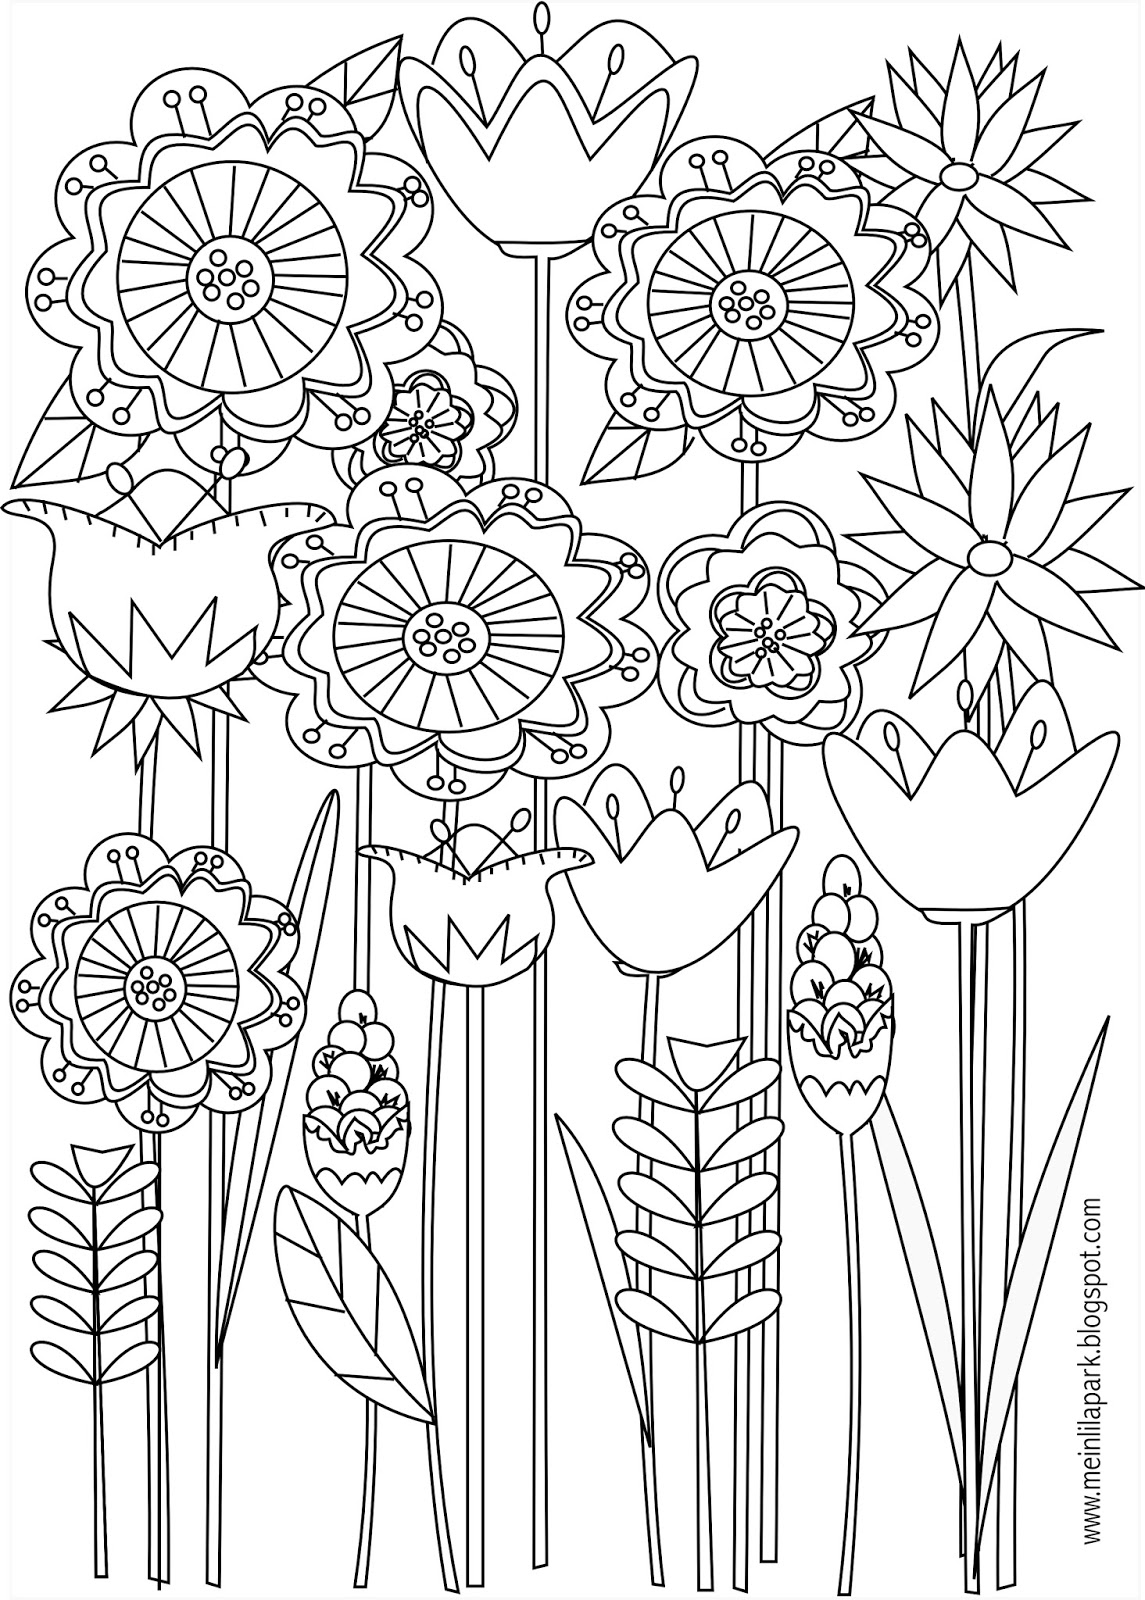 Free printable spring coloring pages - Ausmalbilder ... | free printable spring coloring pages for adults